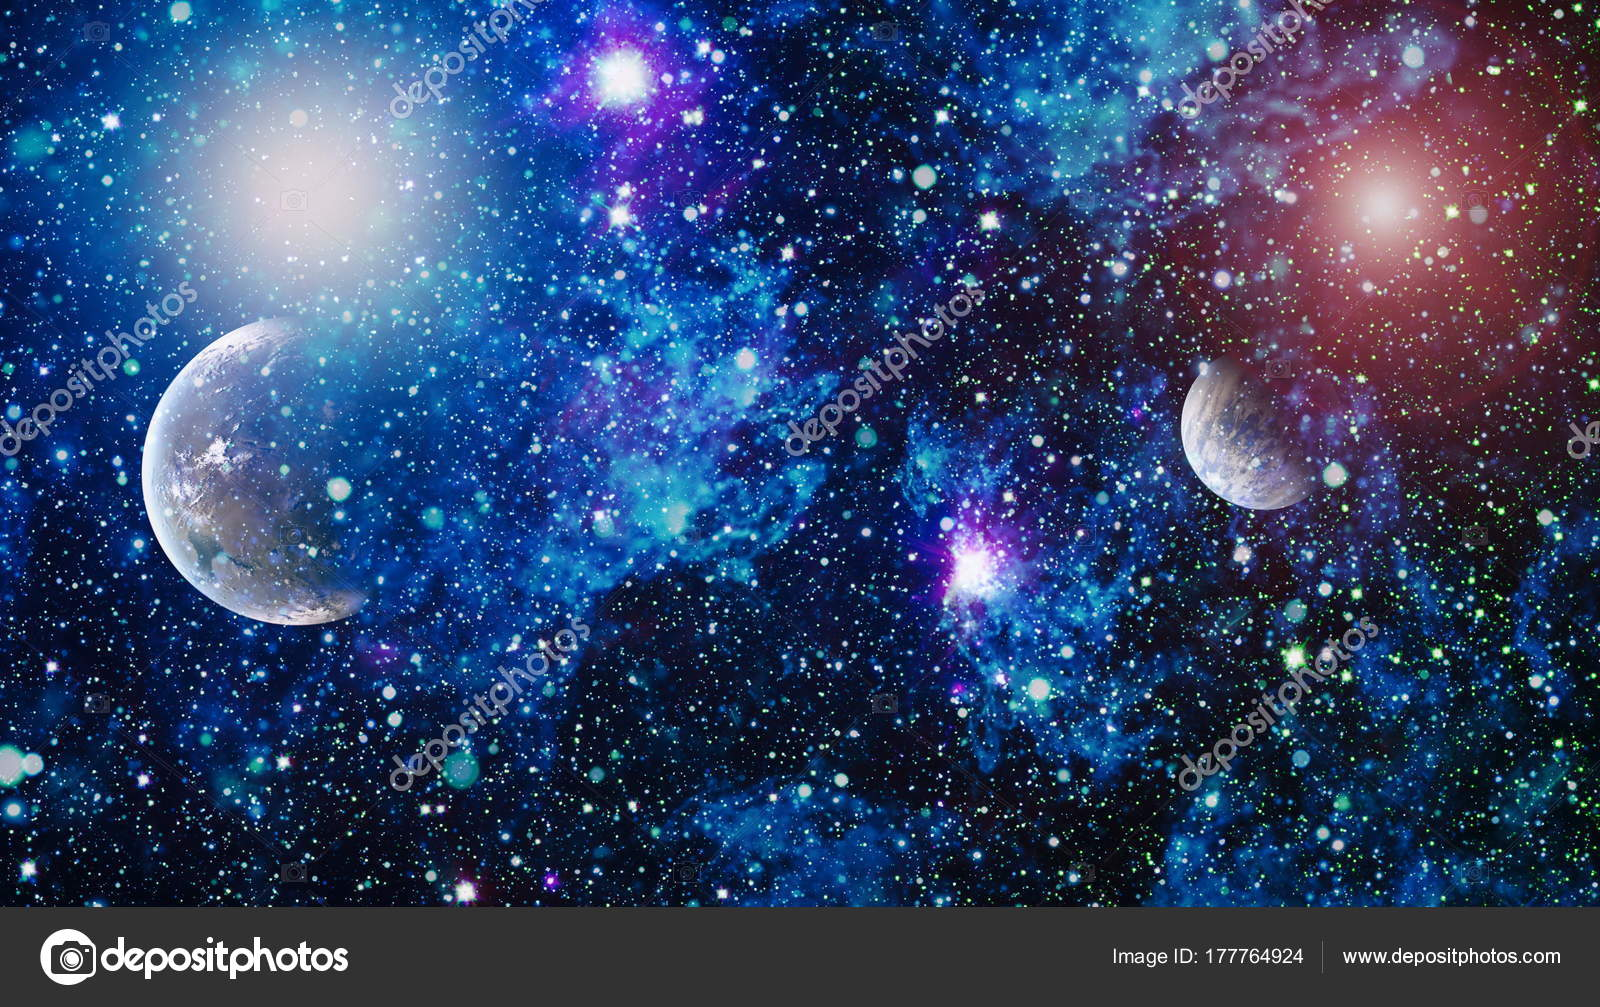 Planets Stars And Galaxies In Outer Space Showing The Beauty Of Exploration Elements